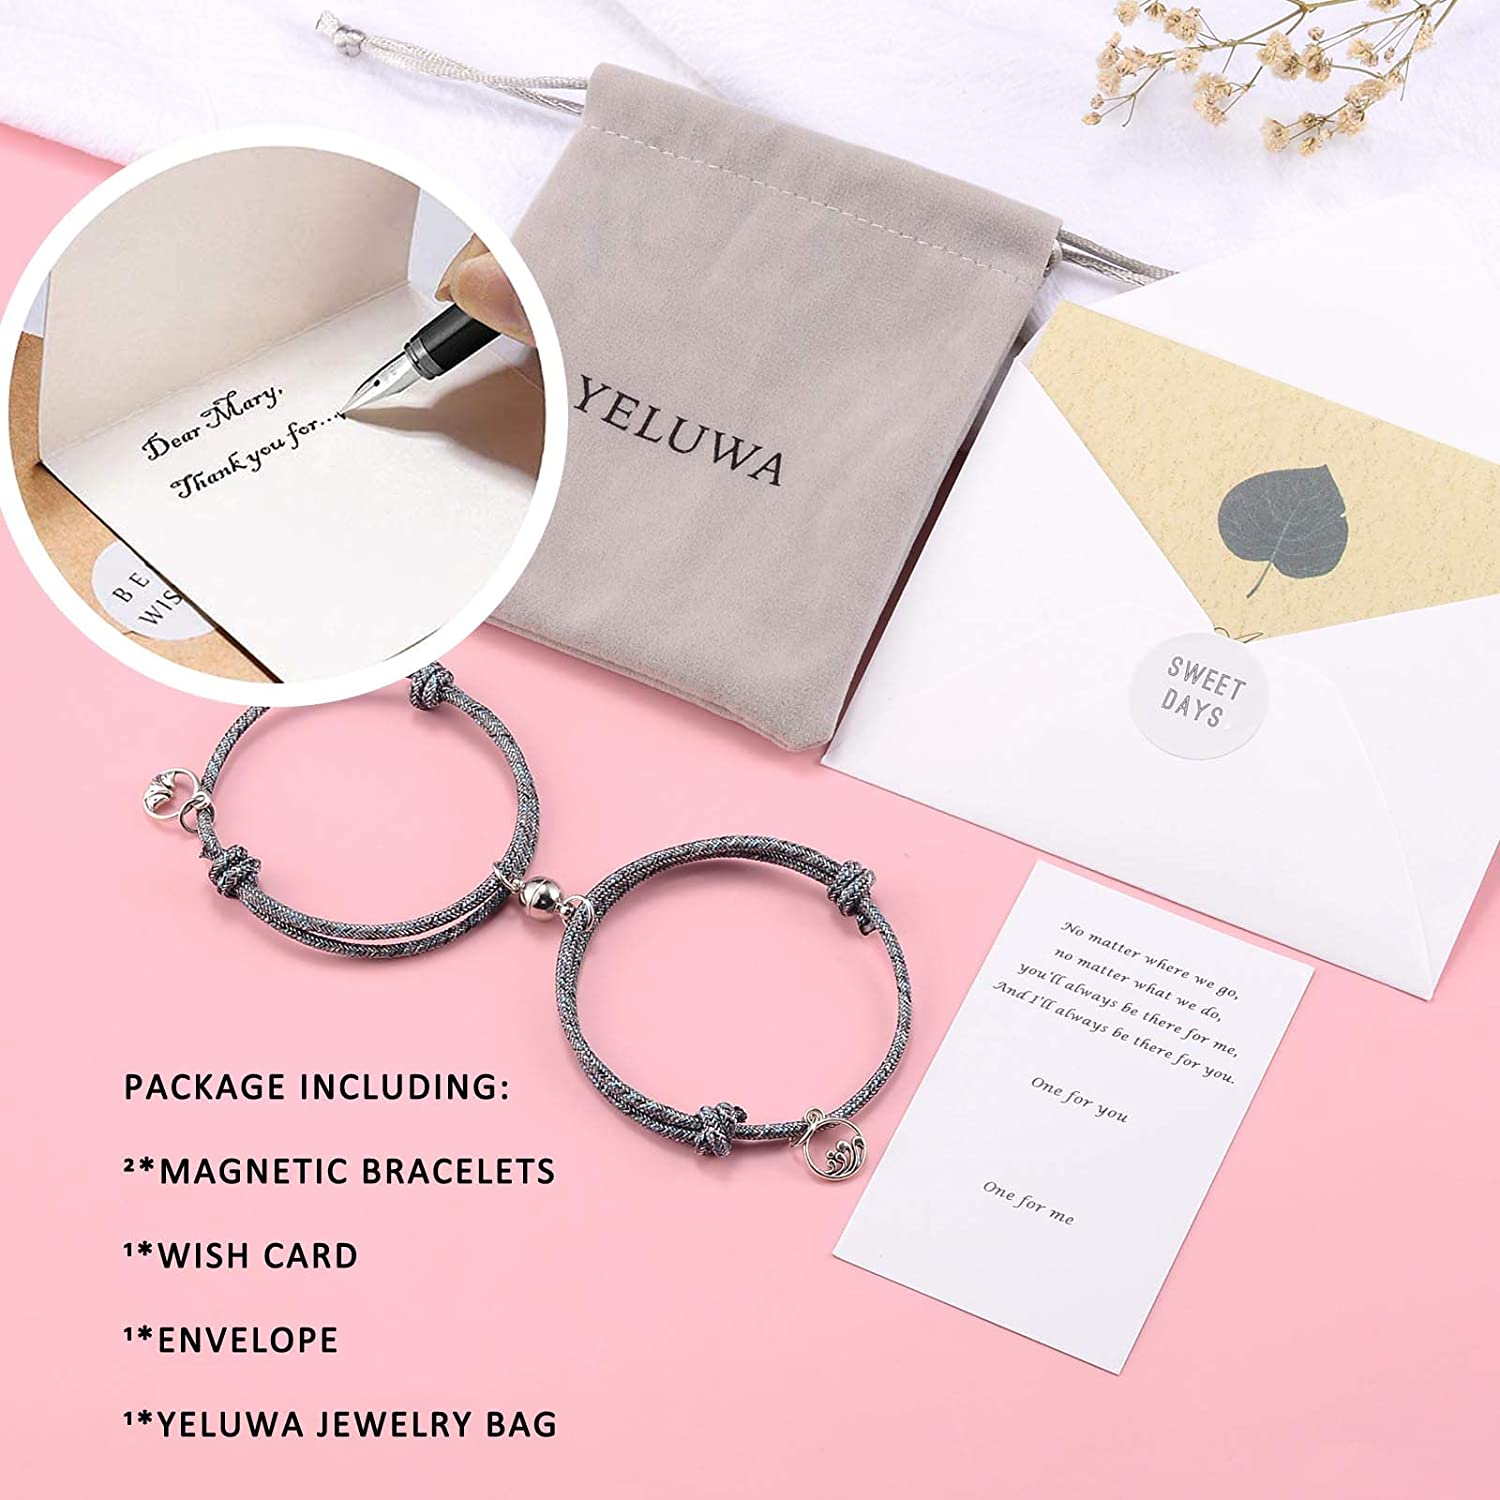 YELUWA 2Pcs Magnetic Distance Matching Rope Bracelets for Men Women Mutual Attraction Couple Boyfriend Girlfriend Mom Daughter Sister BFF Friendship Braided Gifts